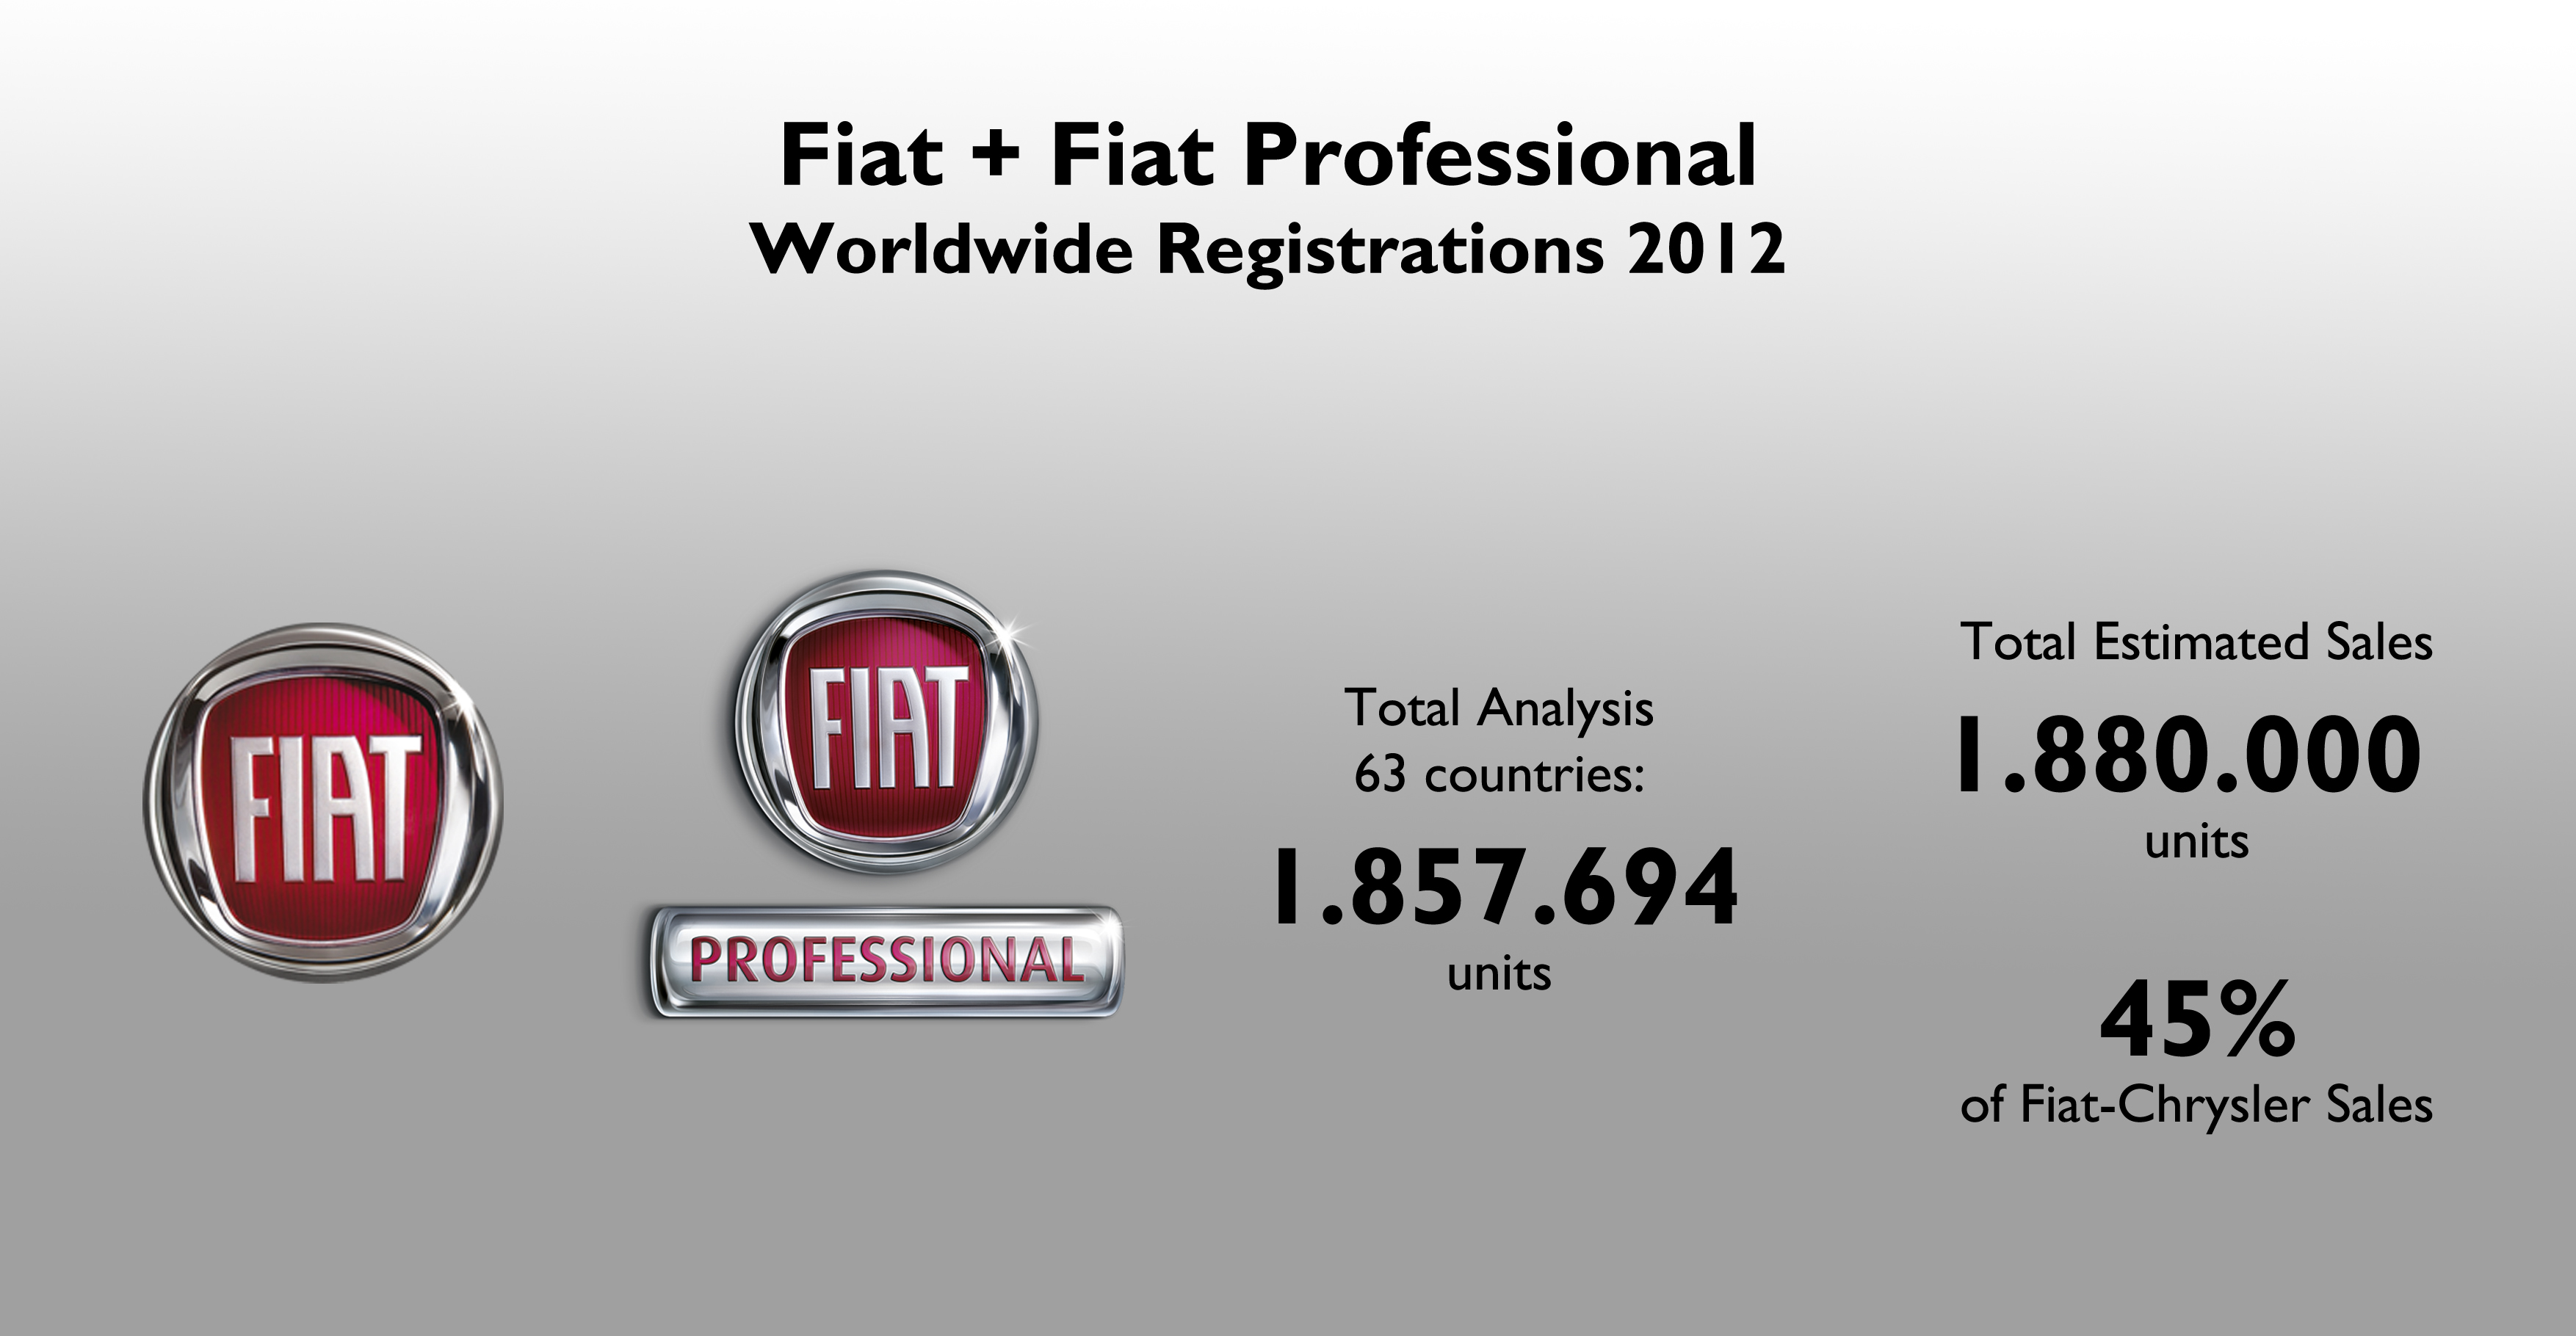 Fiat Brand Sales 2012 Full Year Analysis | Fiat Group\'s World